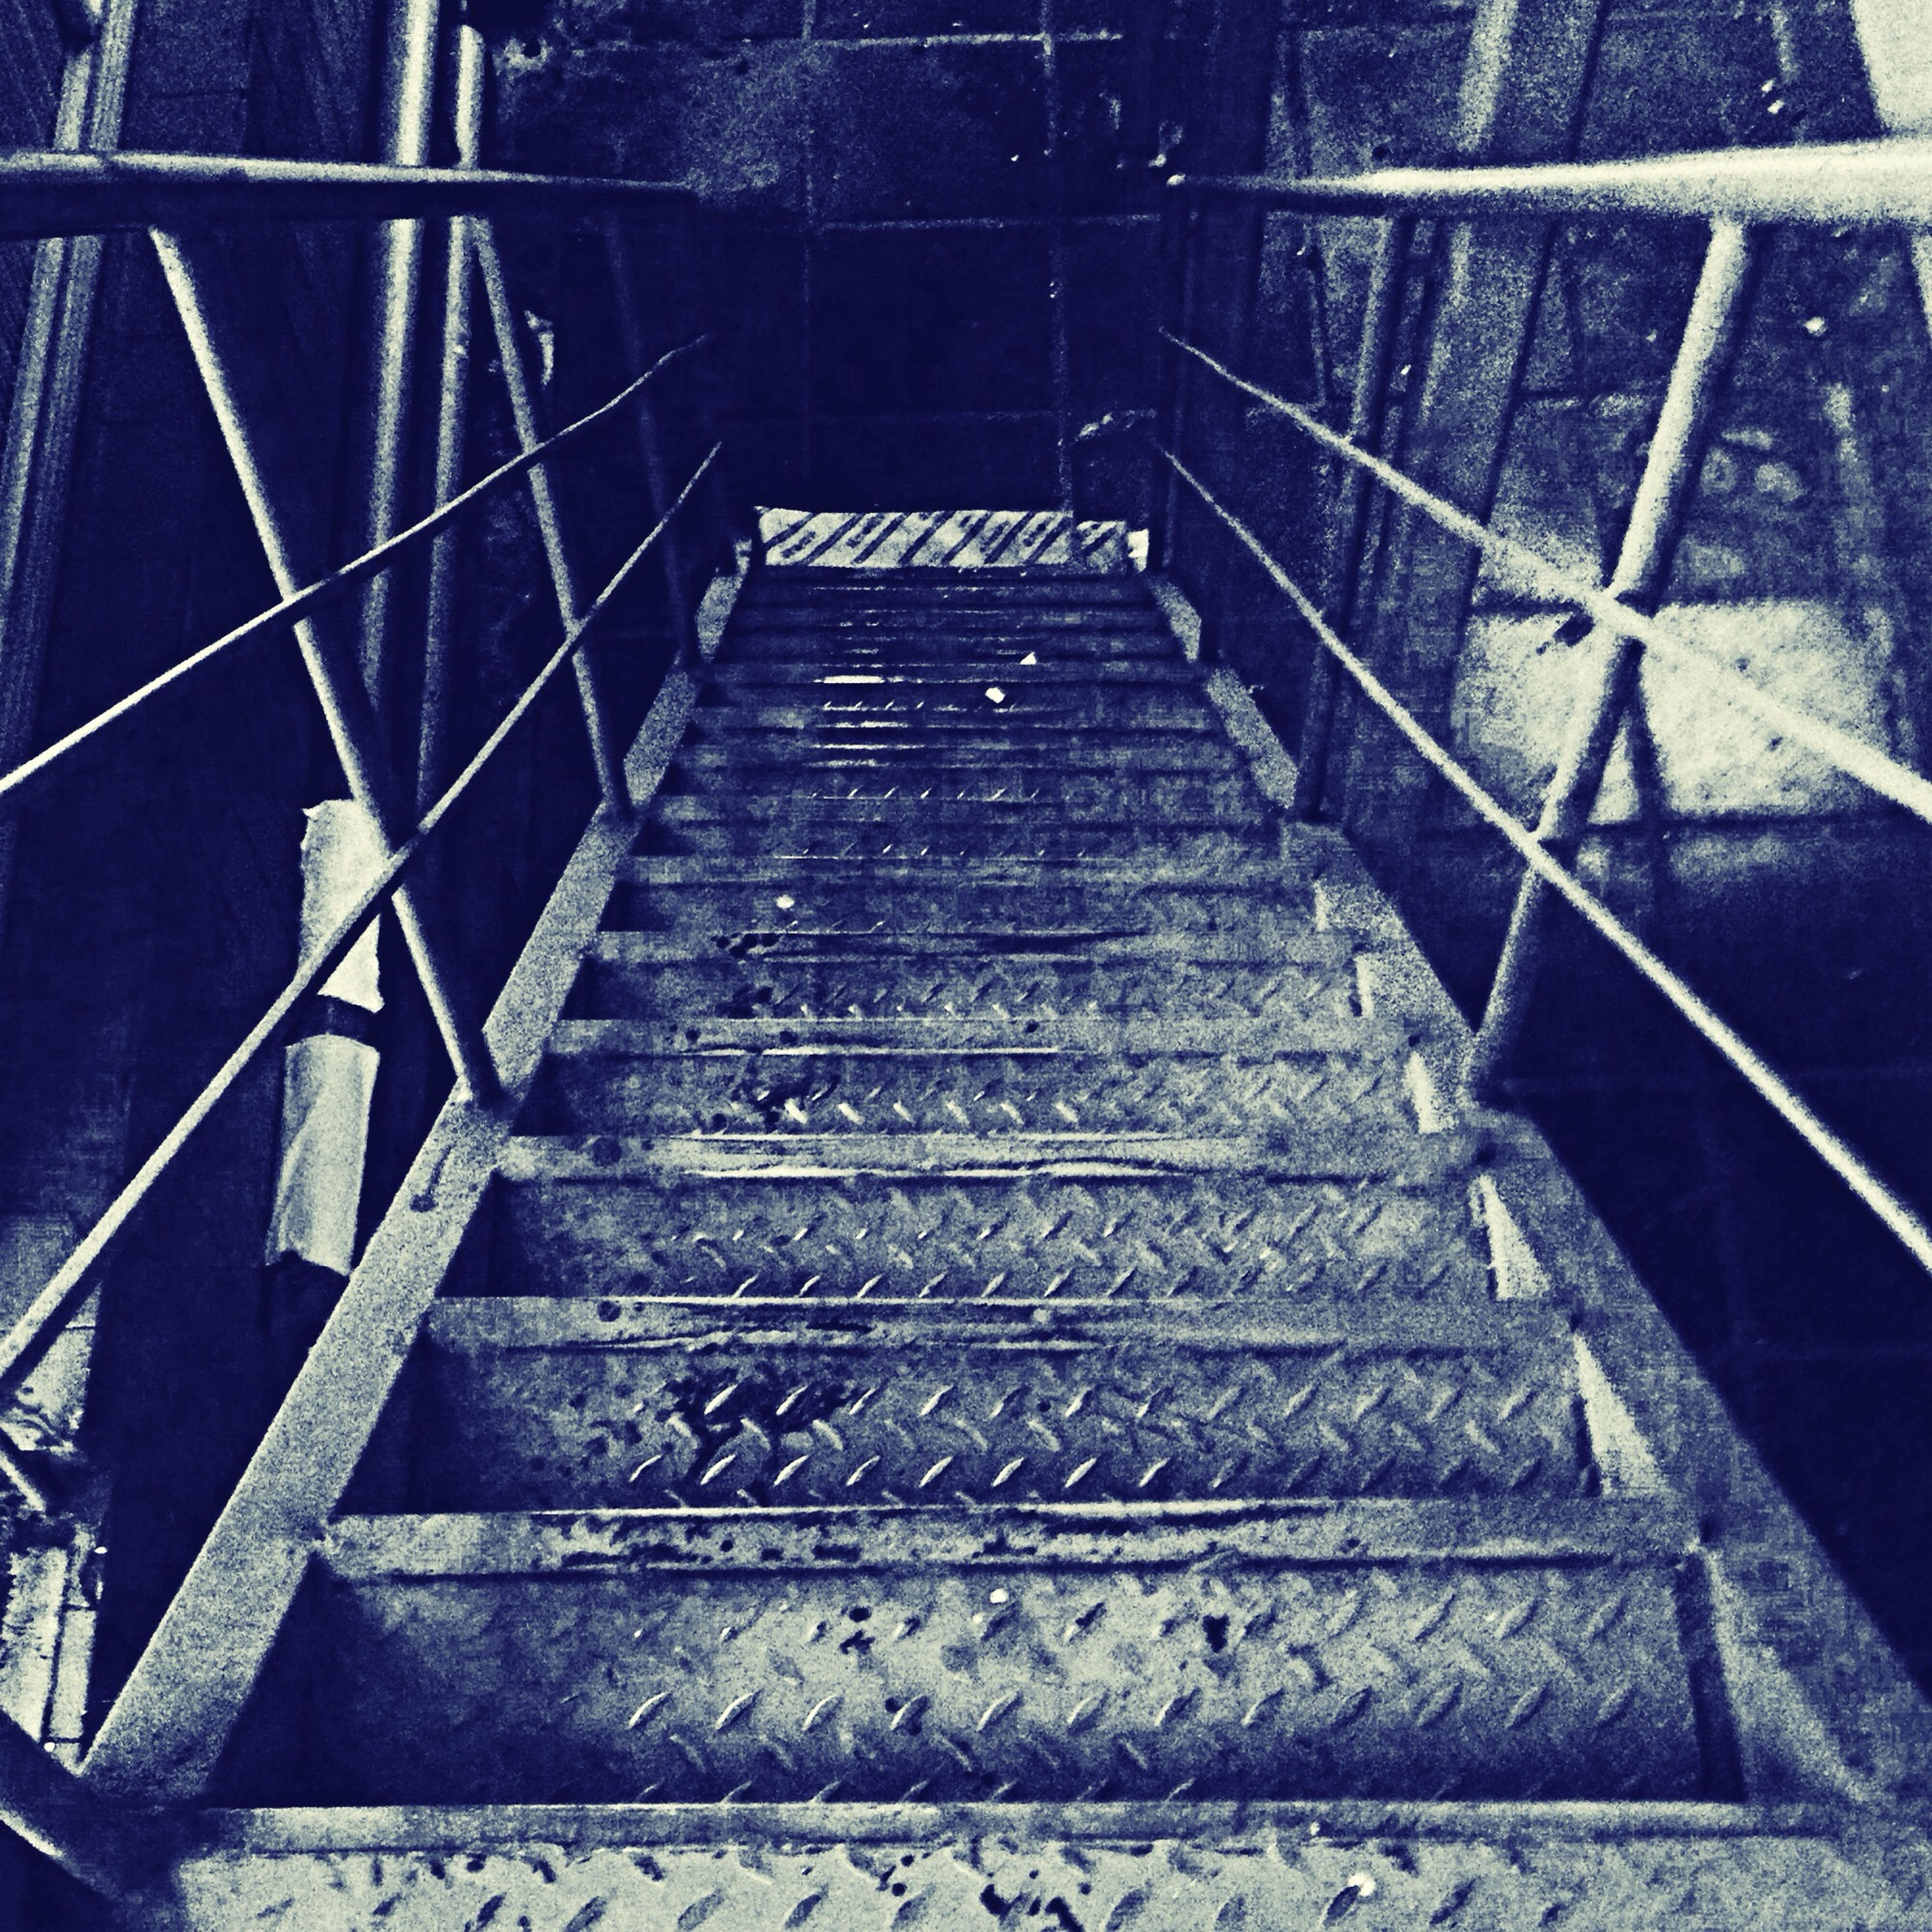 steps and staircases, steps, staircase, railing, metal, the way forward, low angle view, built structure, architecture, stairs, diminishing perspective, connection, high angle view, metallic, no people, day, vanishing point, old, outdoors